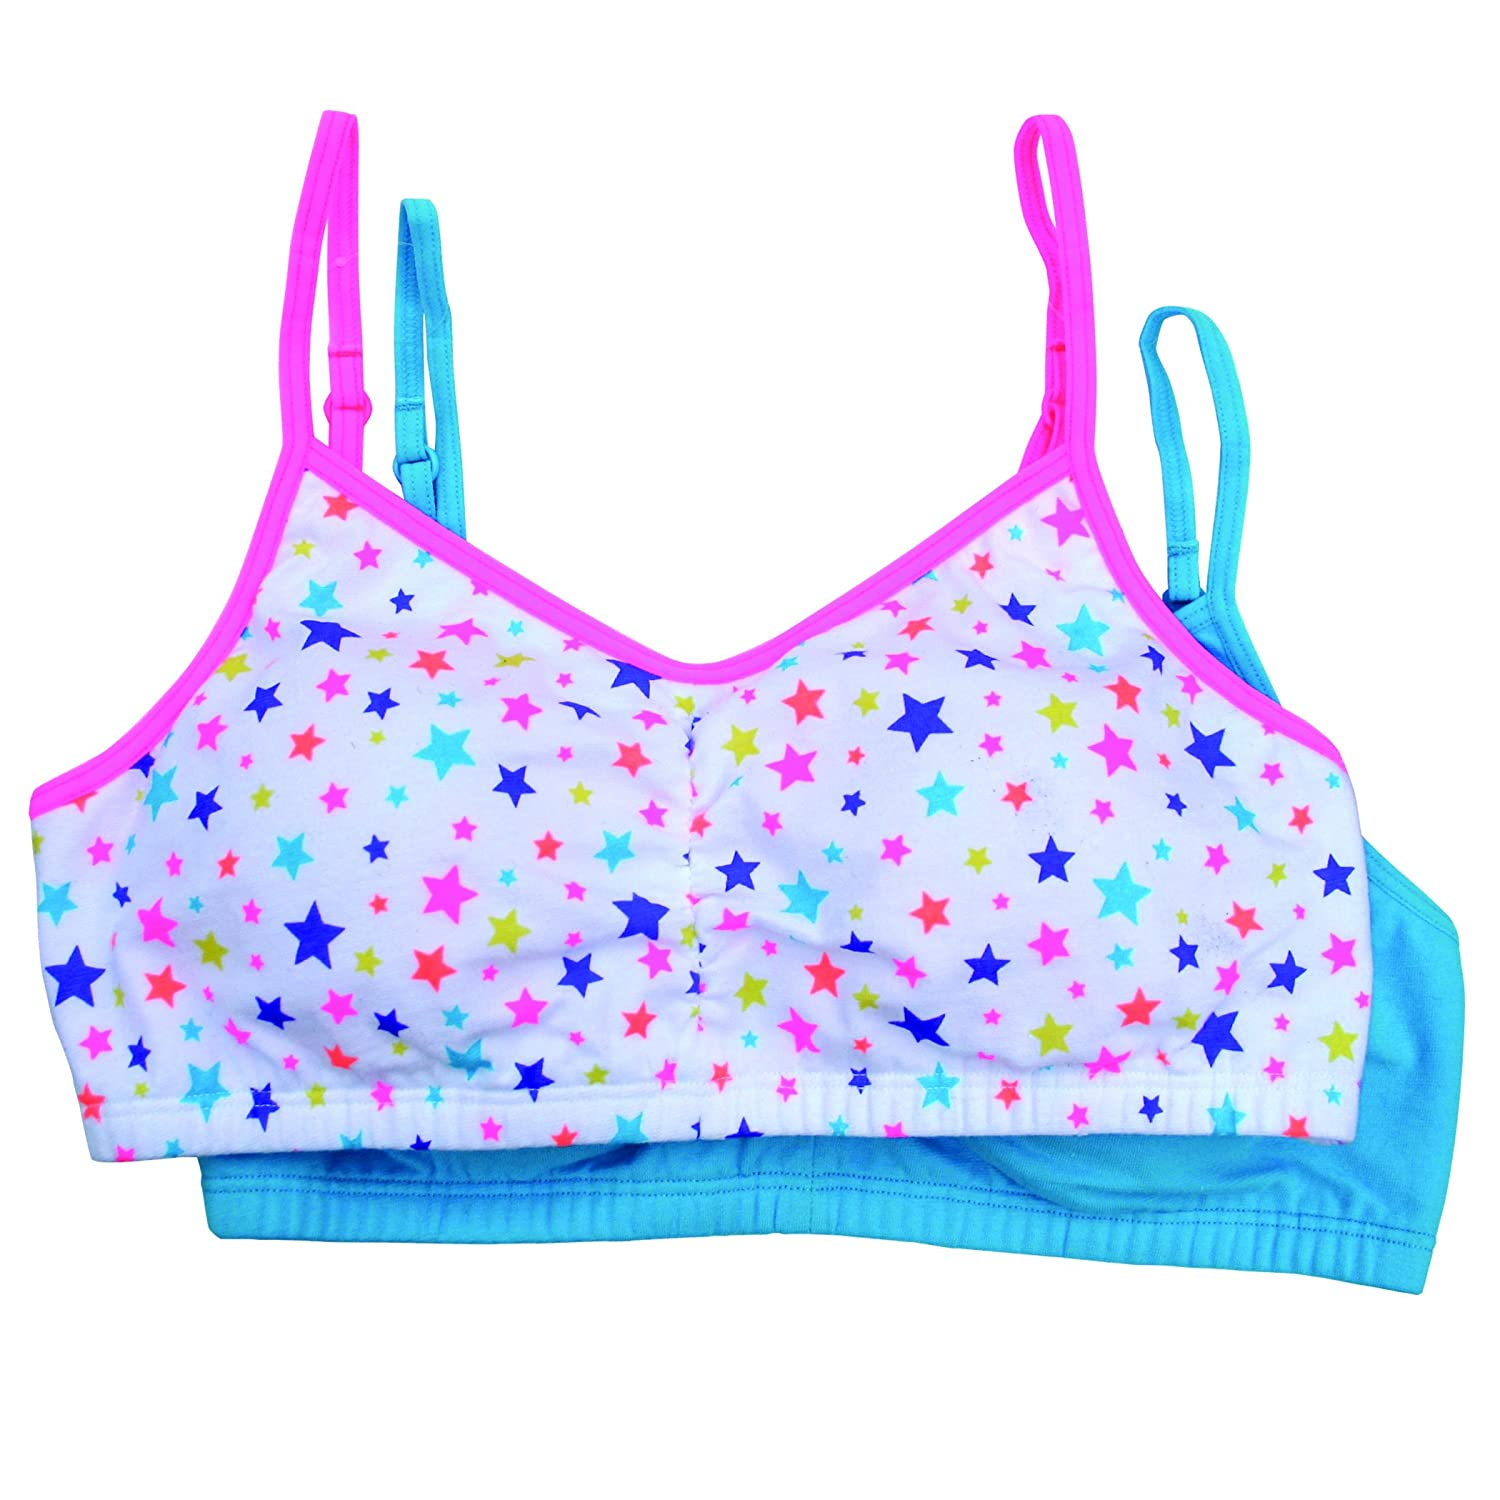 Fruit of the Loom Girls Big Girls Cotton Bralette ()(Pack of 2) 94046